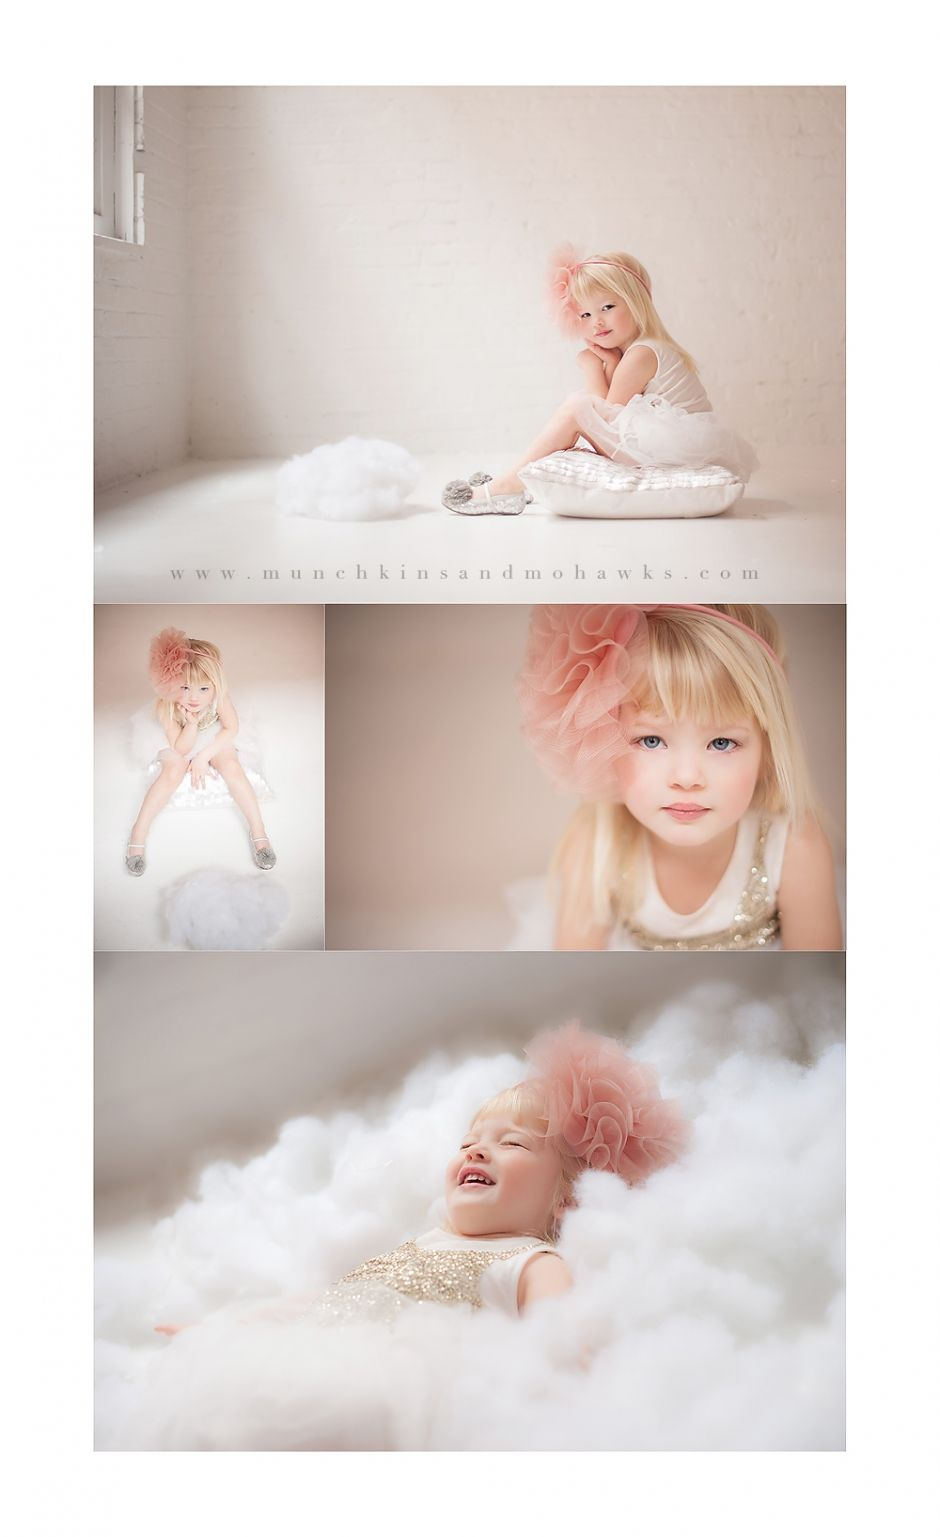 Love~~a cloudy day | professional commercial child photographer » Munchkins and Mohawks Photography | Portraits by Tiffany Amber